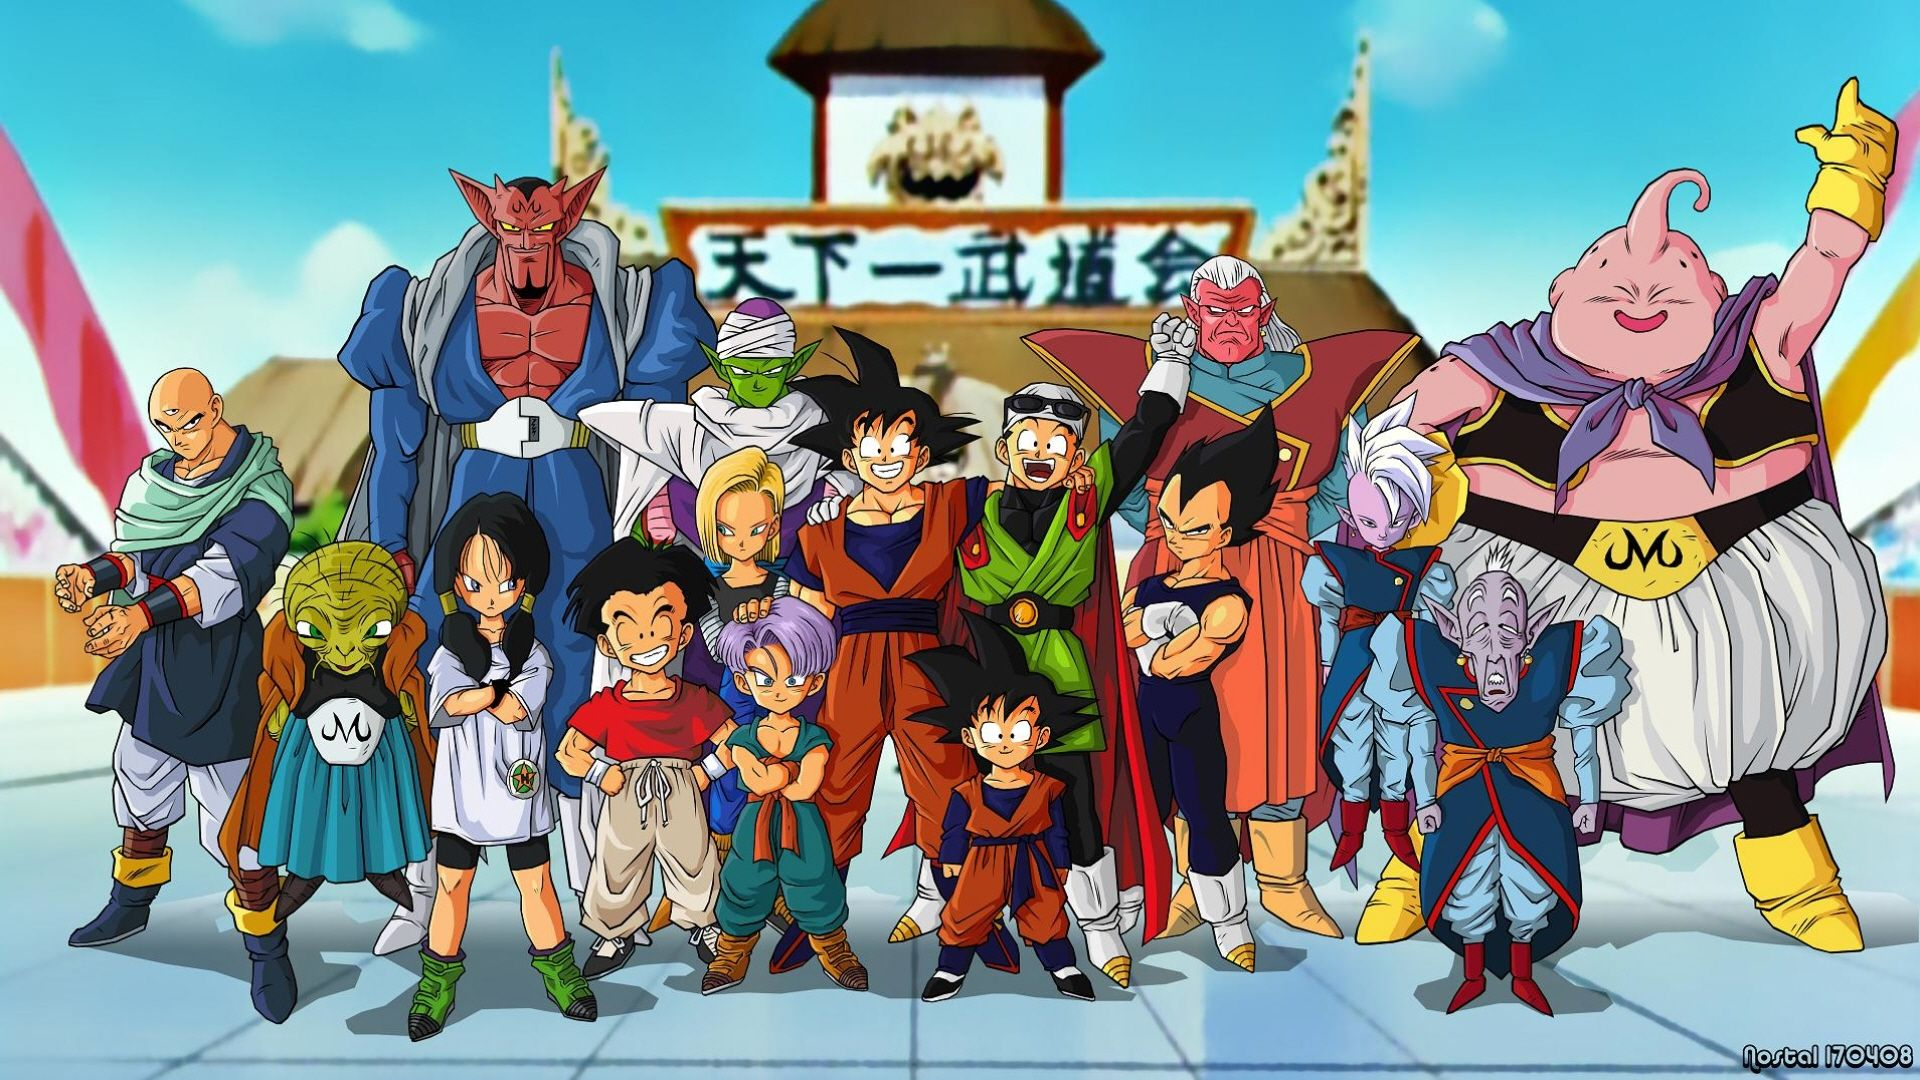 Goku and friends